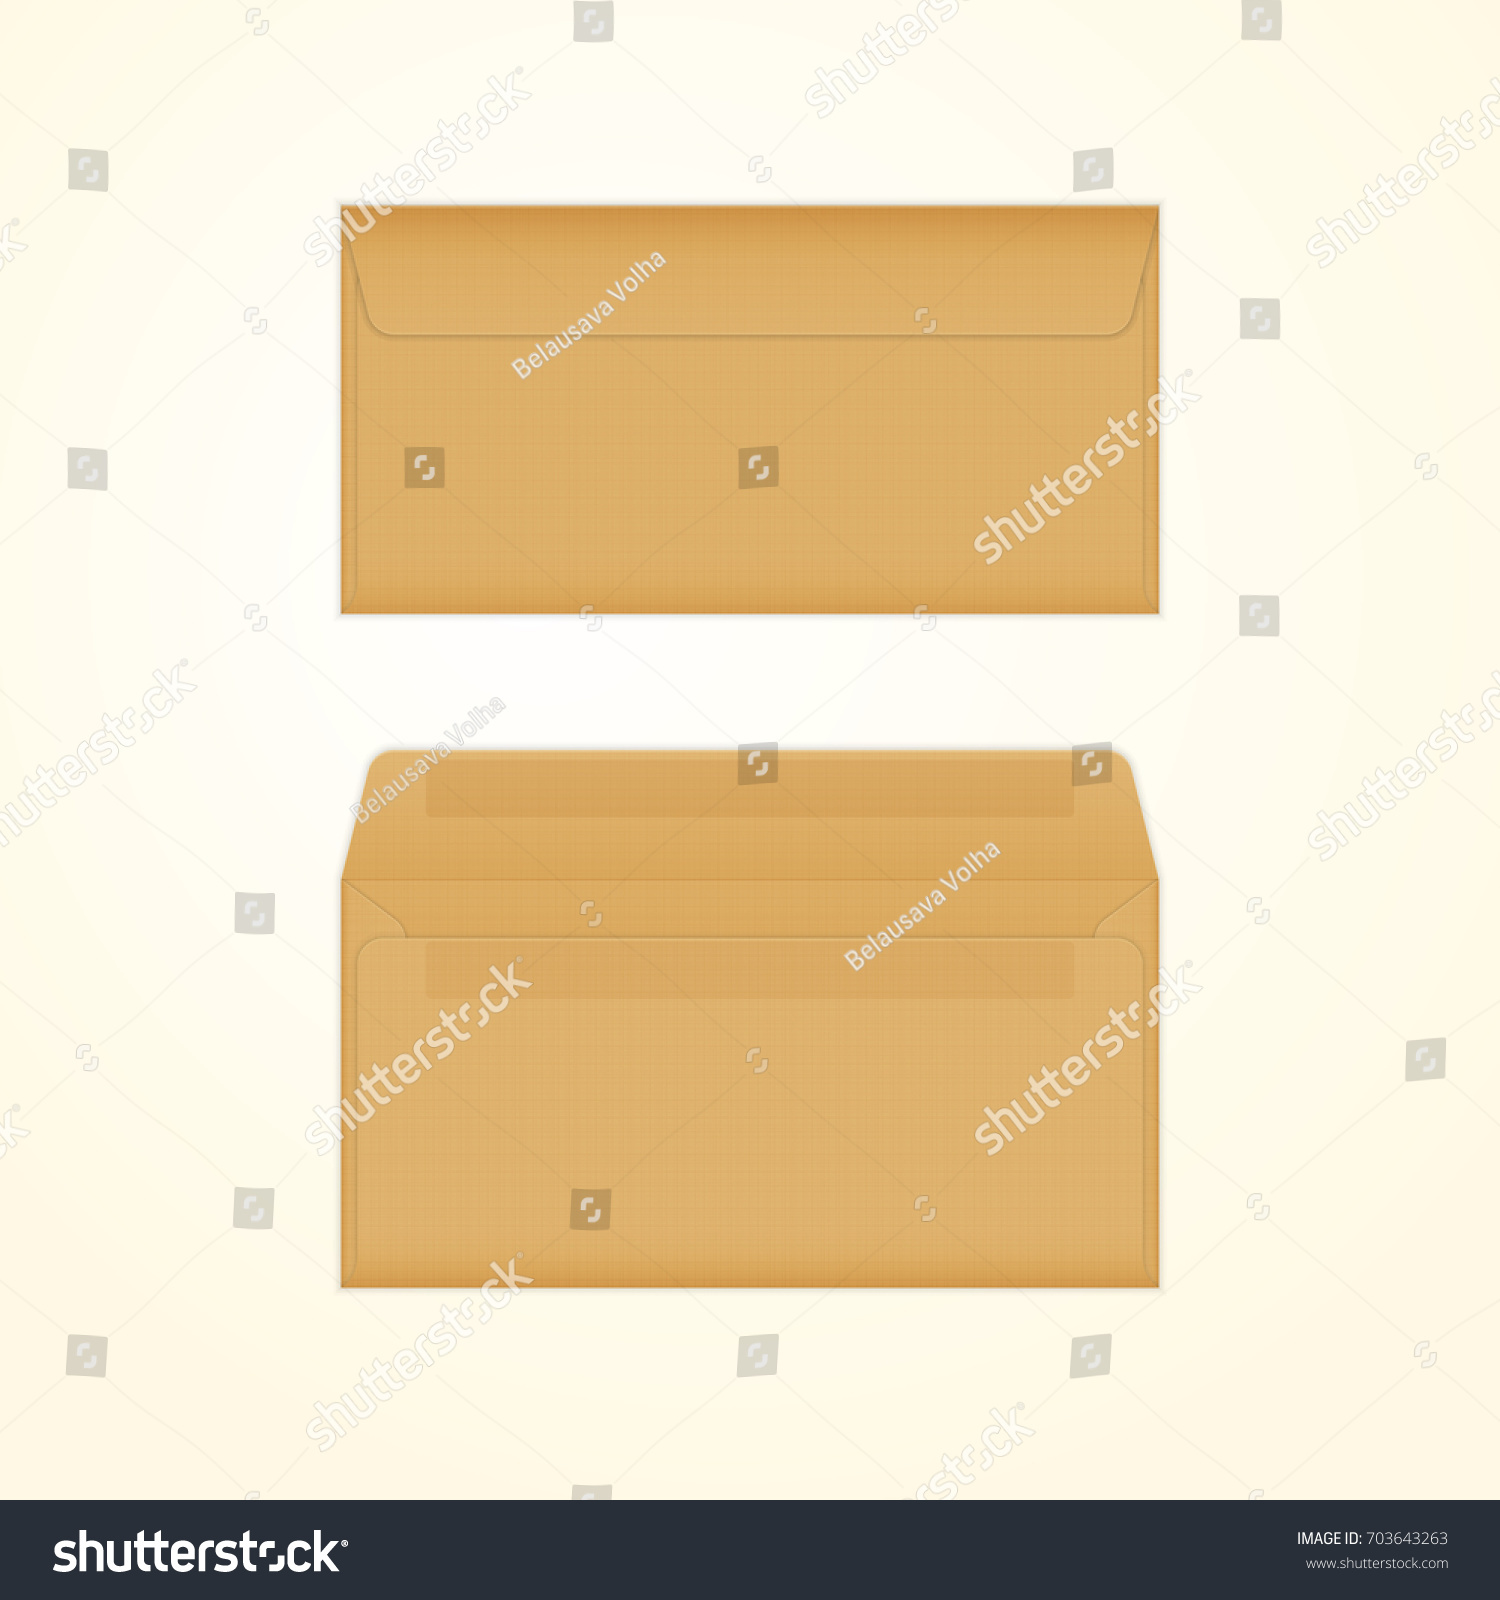 opened closed brown envelopes isolated mockup stock illustration